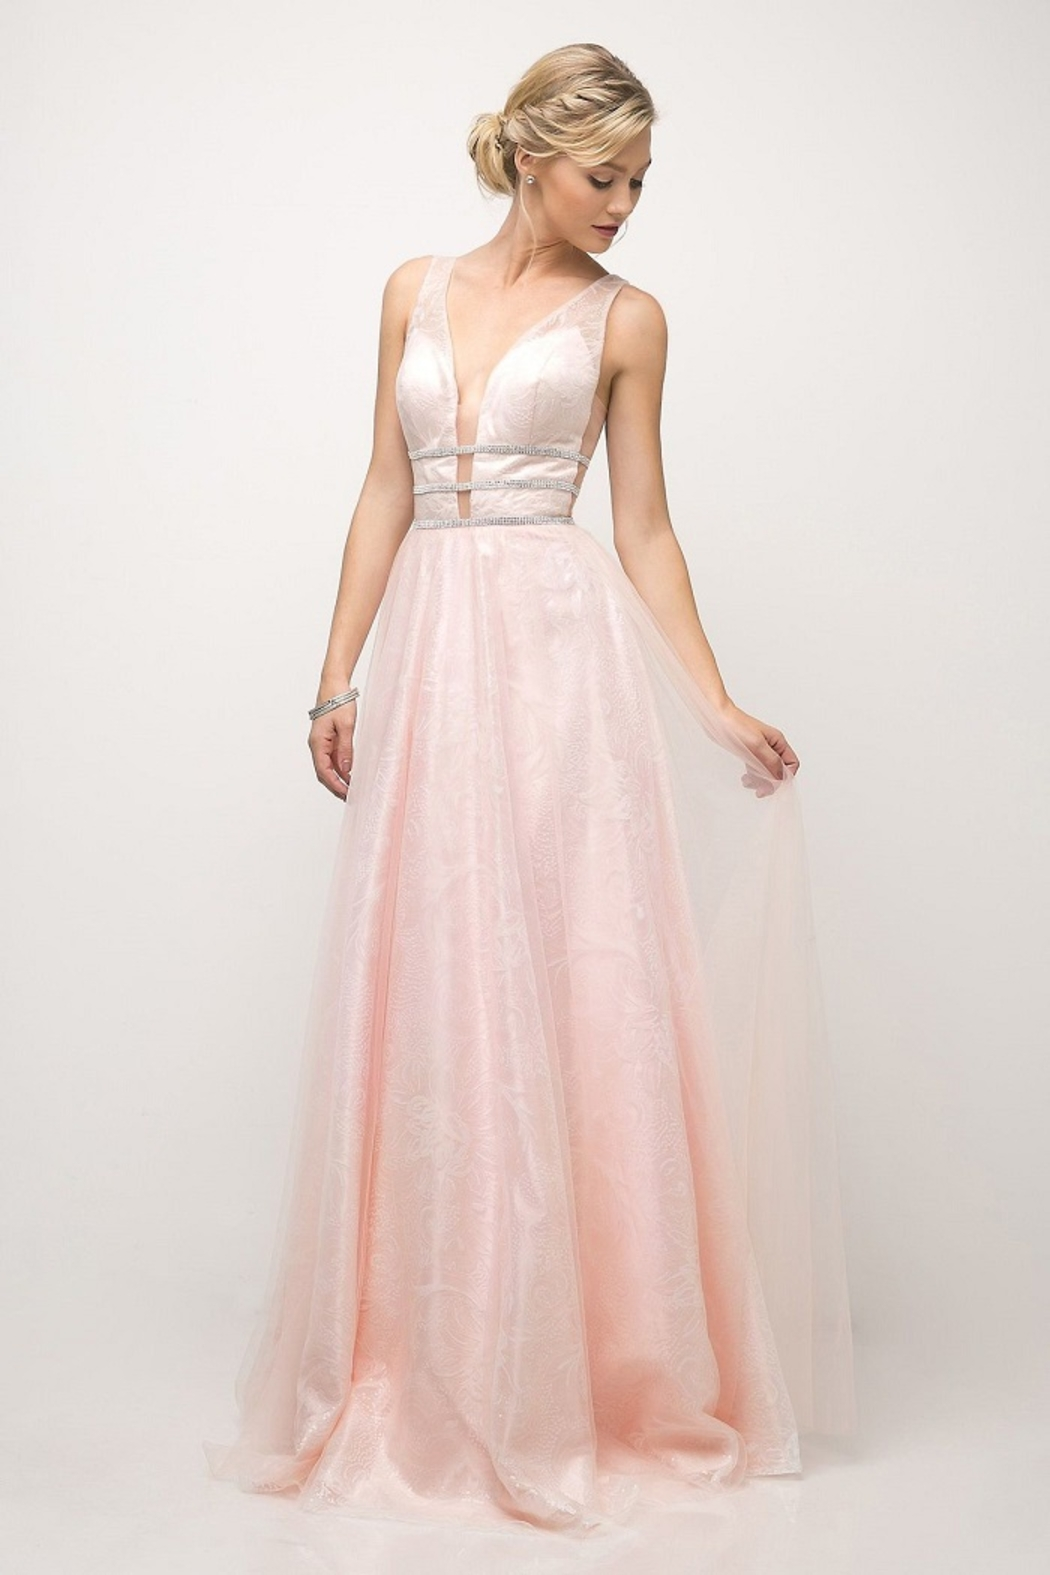 Cinderella Divine Powder Pink A-Line Long Formal Dress - Main Image